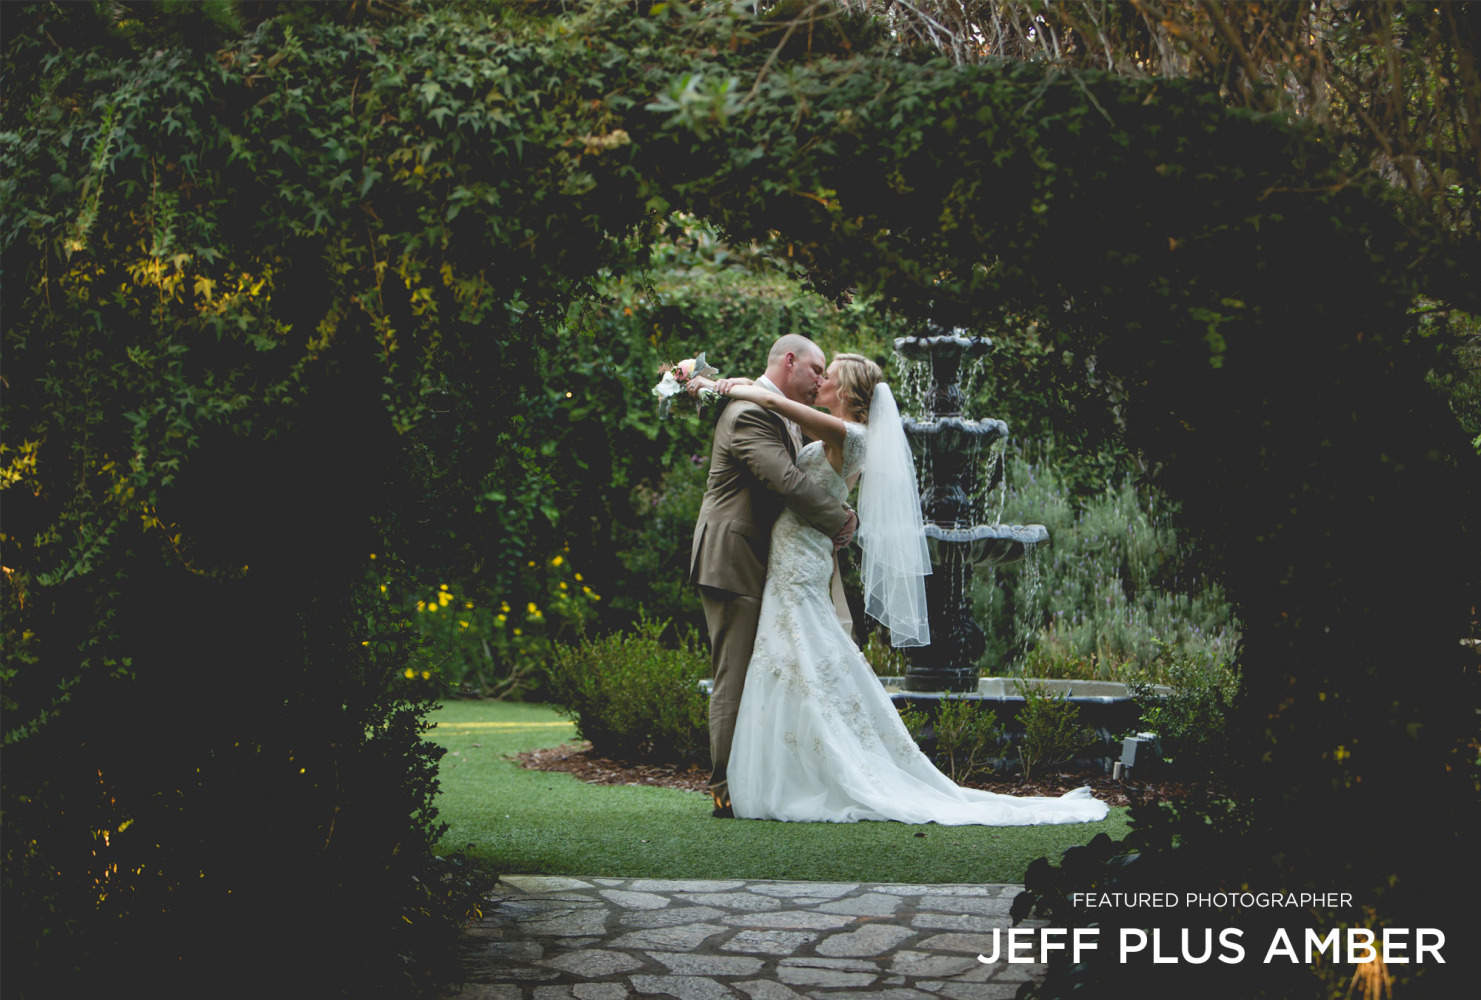 Jeff Plus Amber - Featured Photographer